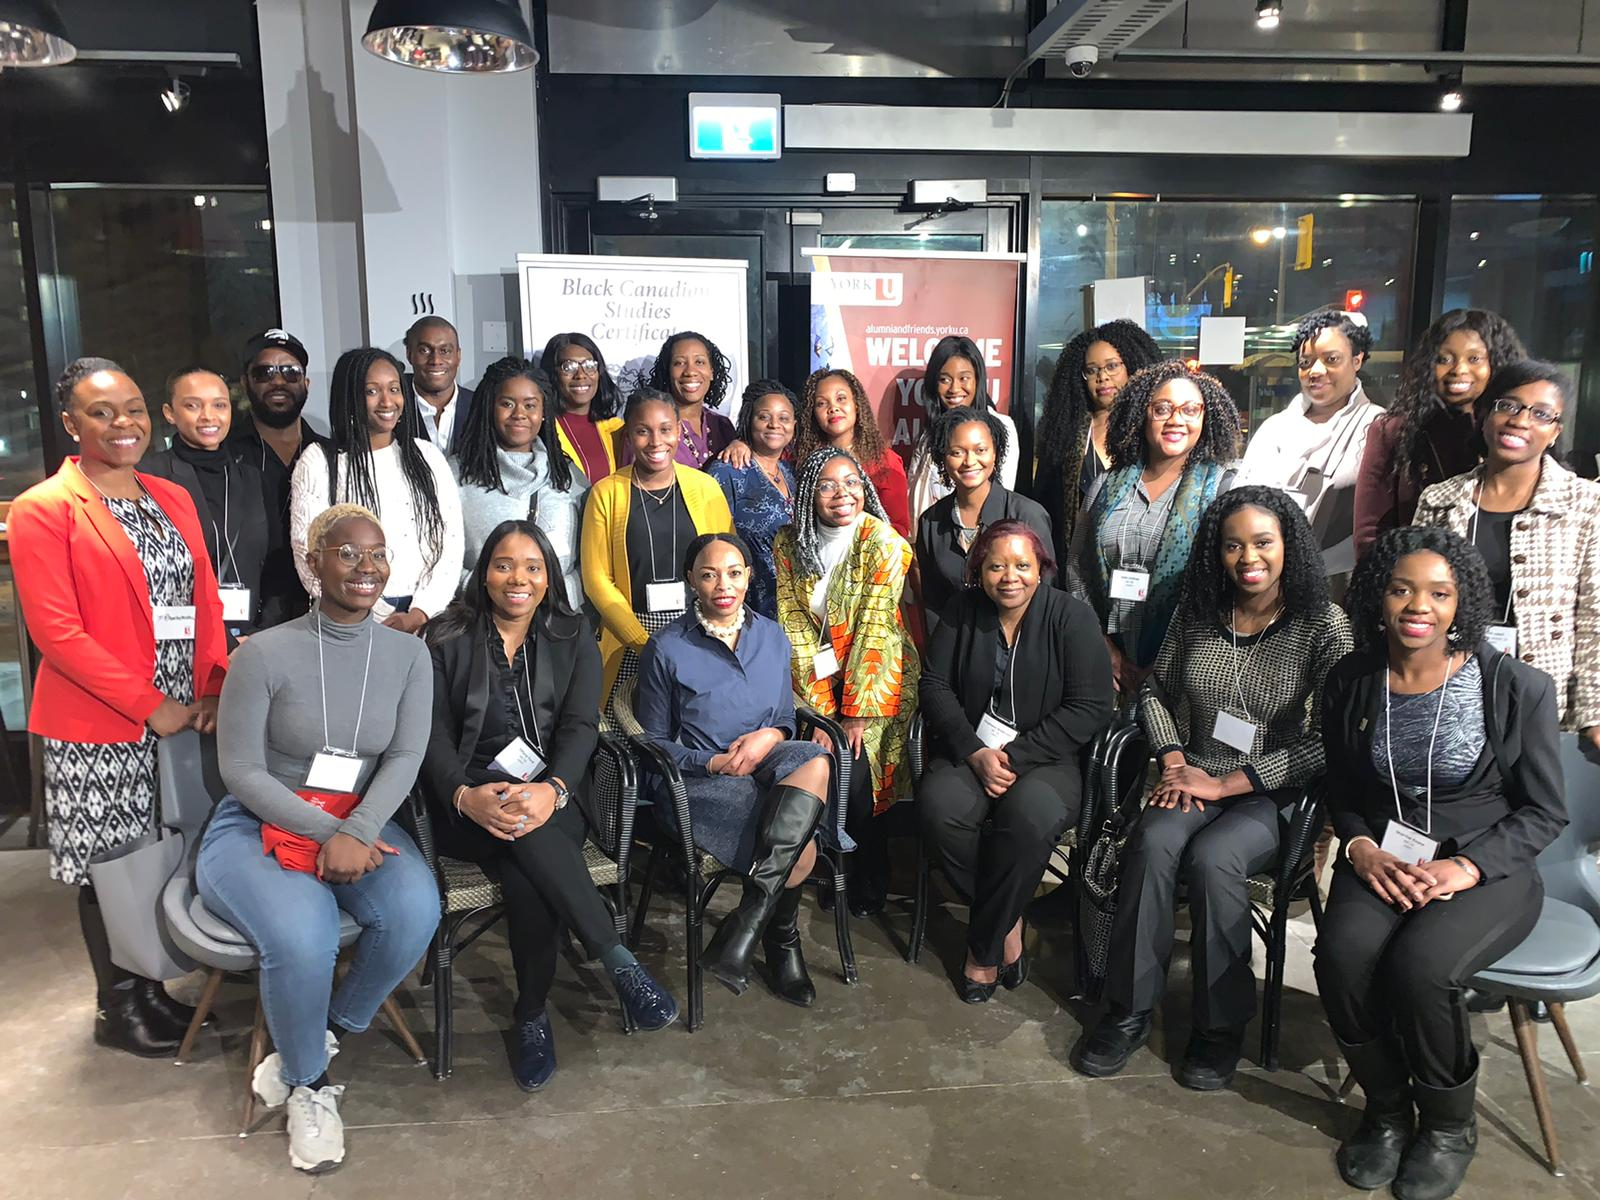 Black Alumni Network (YUBAN) relaunches with official kickoff during Black History Month